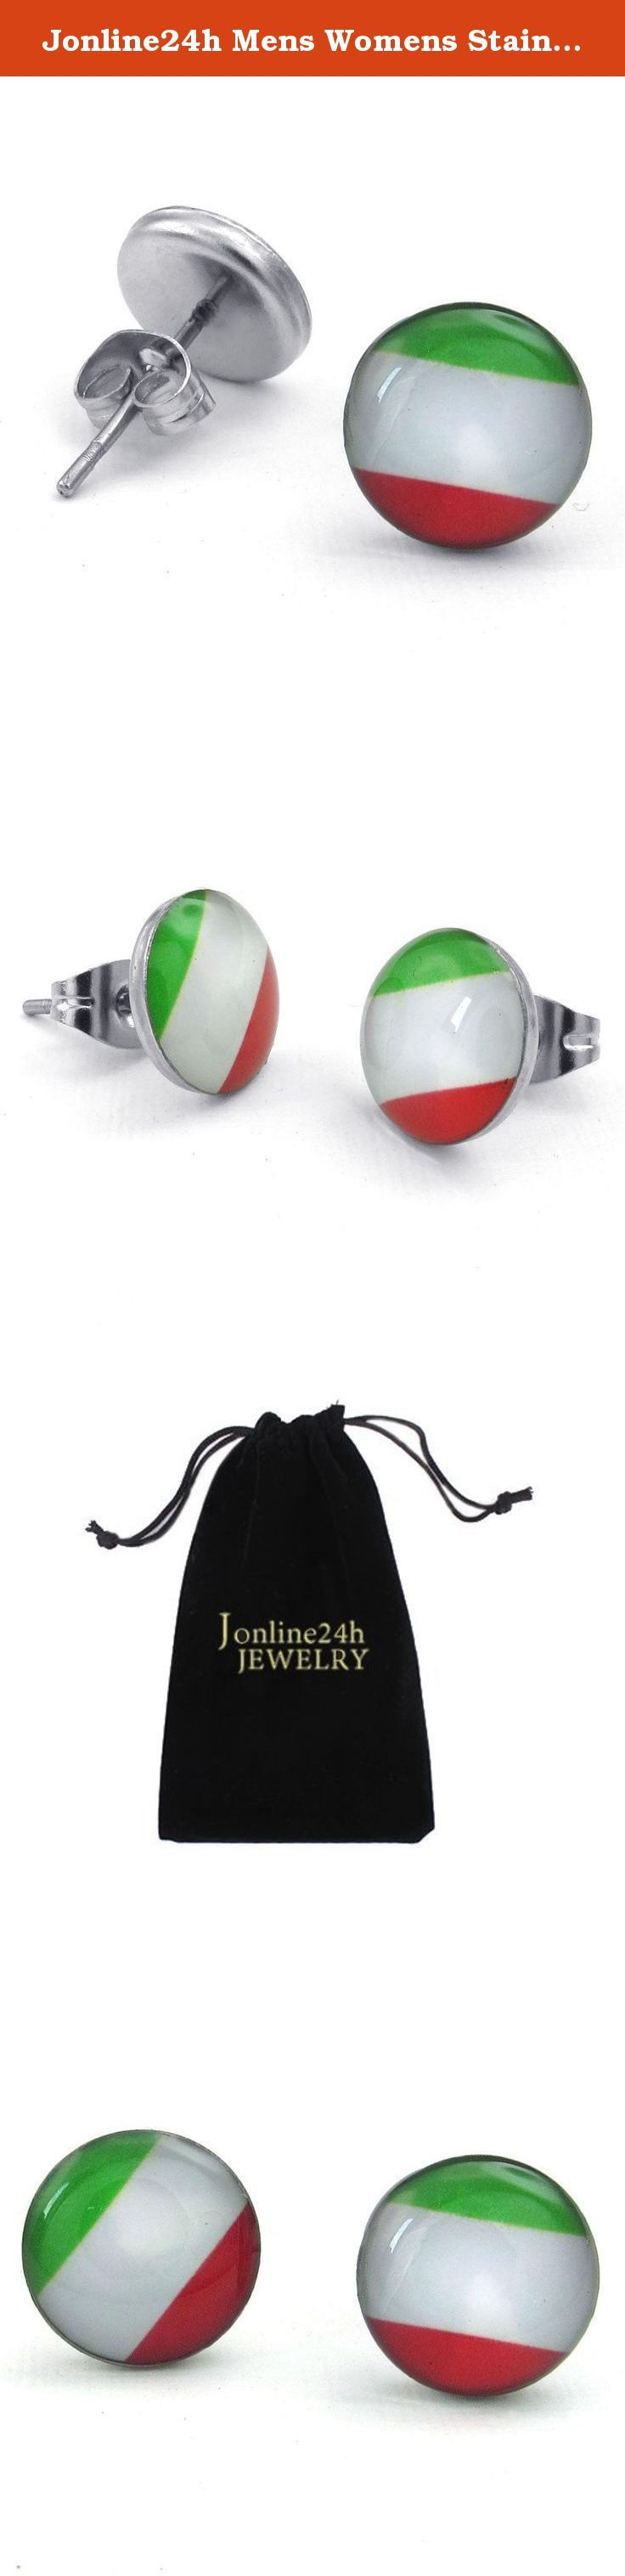 Jonline24h Mens Womens Stainless Steel Italy Flag Italian Banner Stud Earrings, Green White Red. Why choose Stainless Steel Jewelry? Stainless Steel jewelry does not tarnish and oxidize, which can last longer than other jewelries. It is able to endure a lot of wear and tear. And it is amazingly hypoallergenic. Such advantages make it a more popular accessory. Why need Stainless Steel Jewelry? High quality stainless steel has high resistance to rust, corrosion and tarnishing, which…